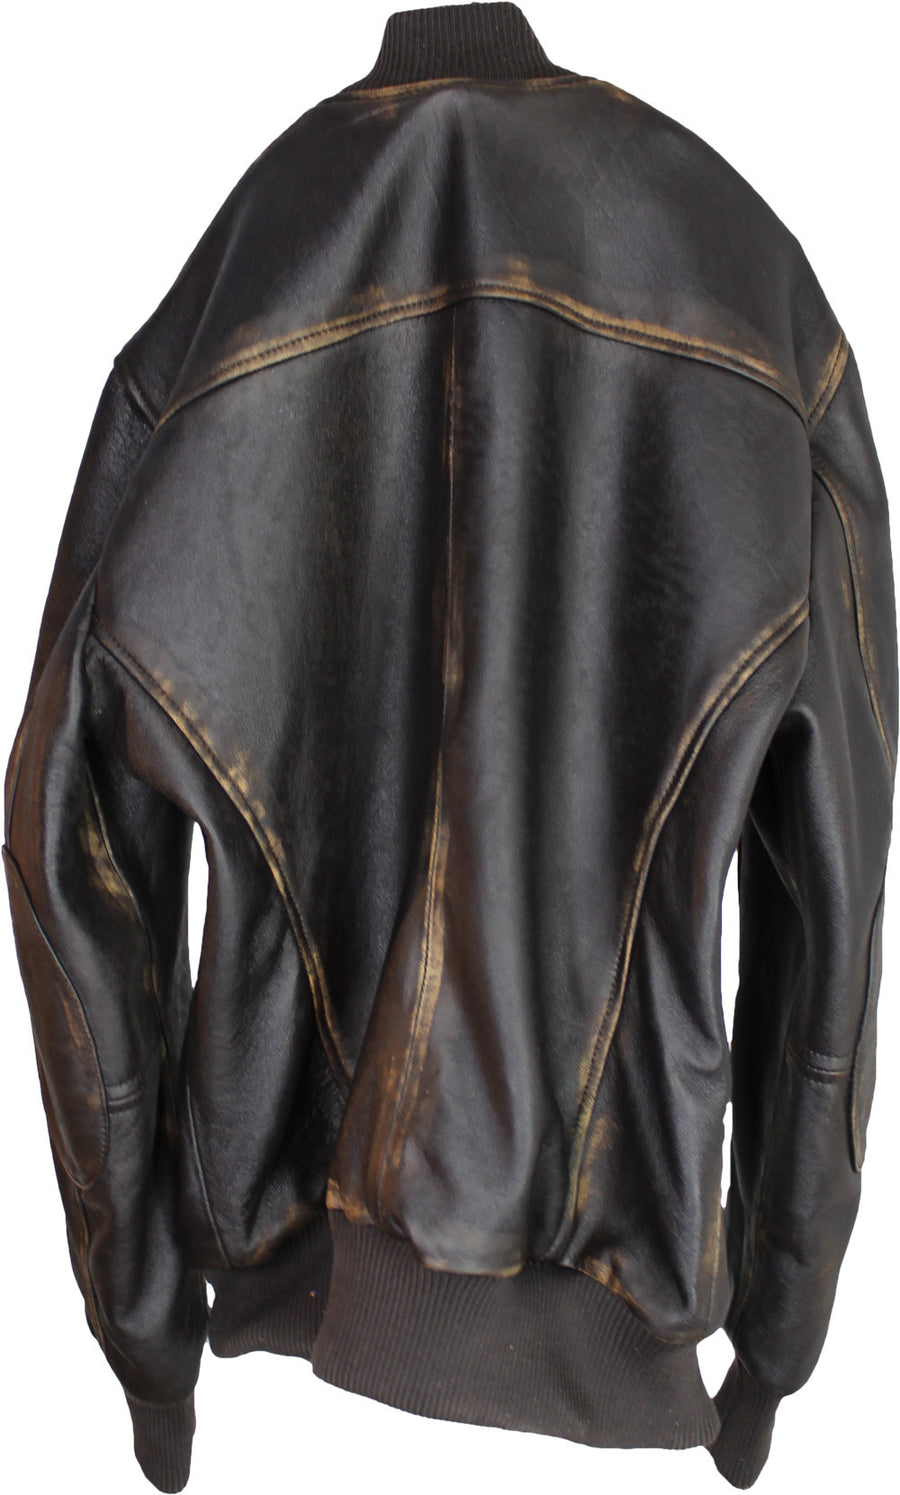 VERMONT Leather Jacket Bomber  - Distressed Dark Brown